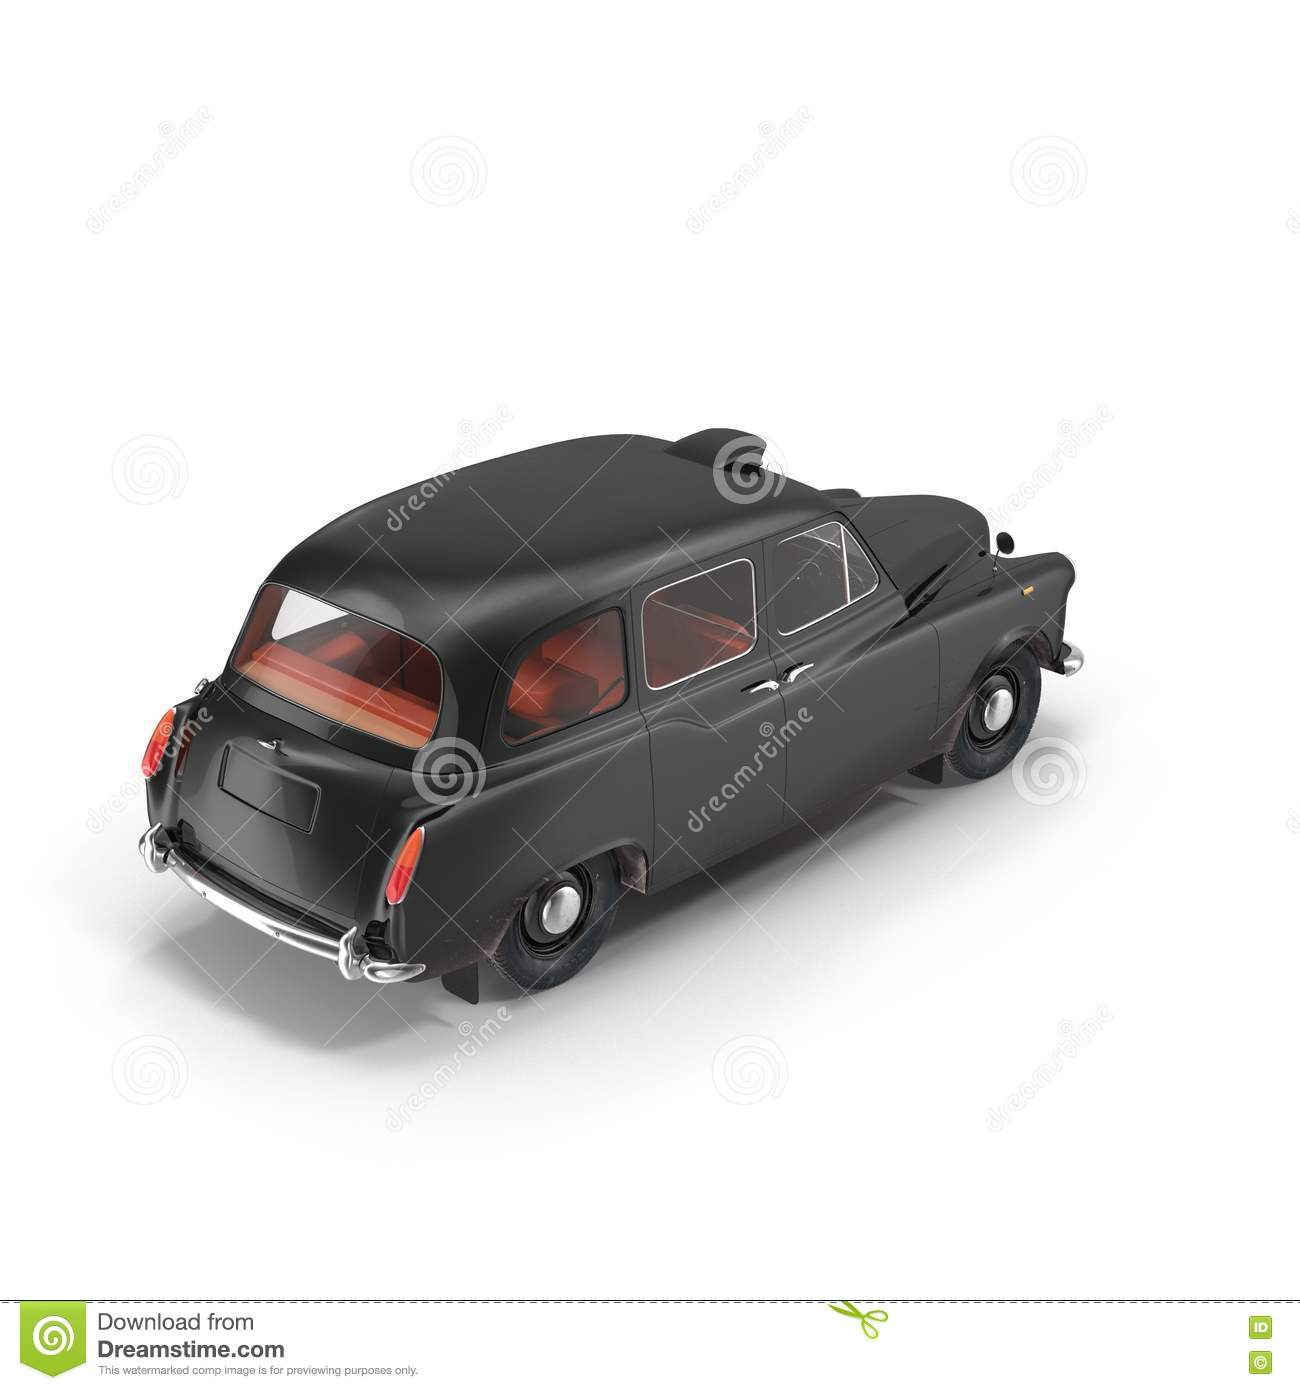 London cab isolated on white 3D illustration